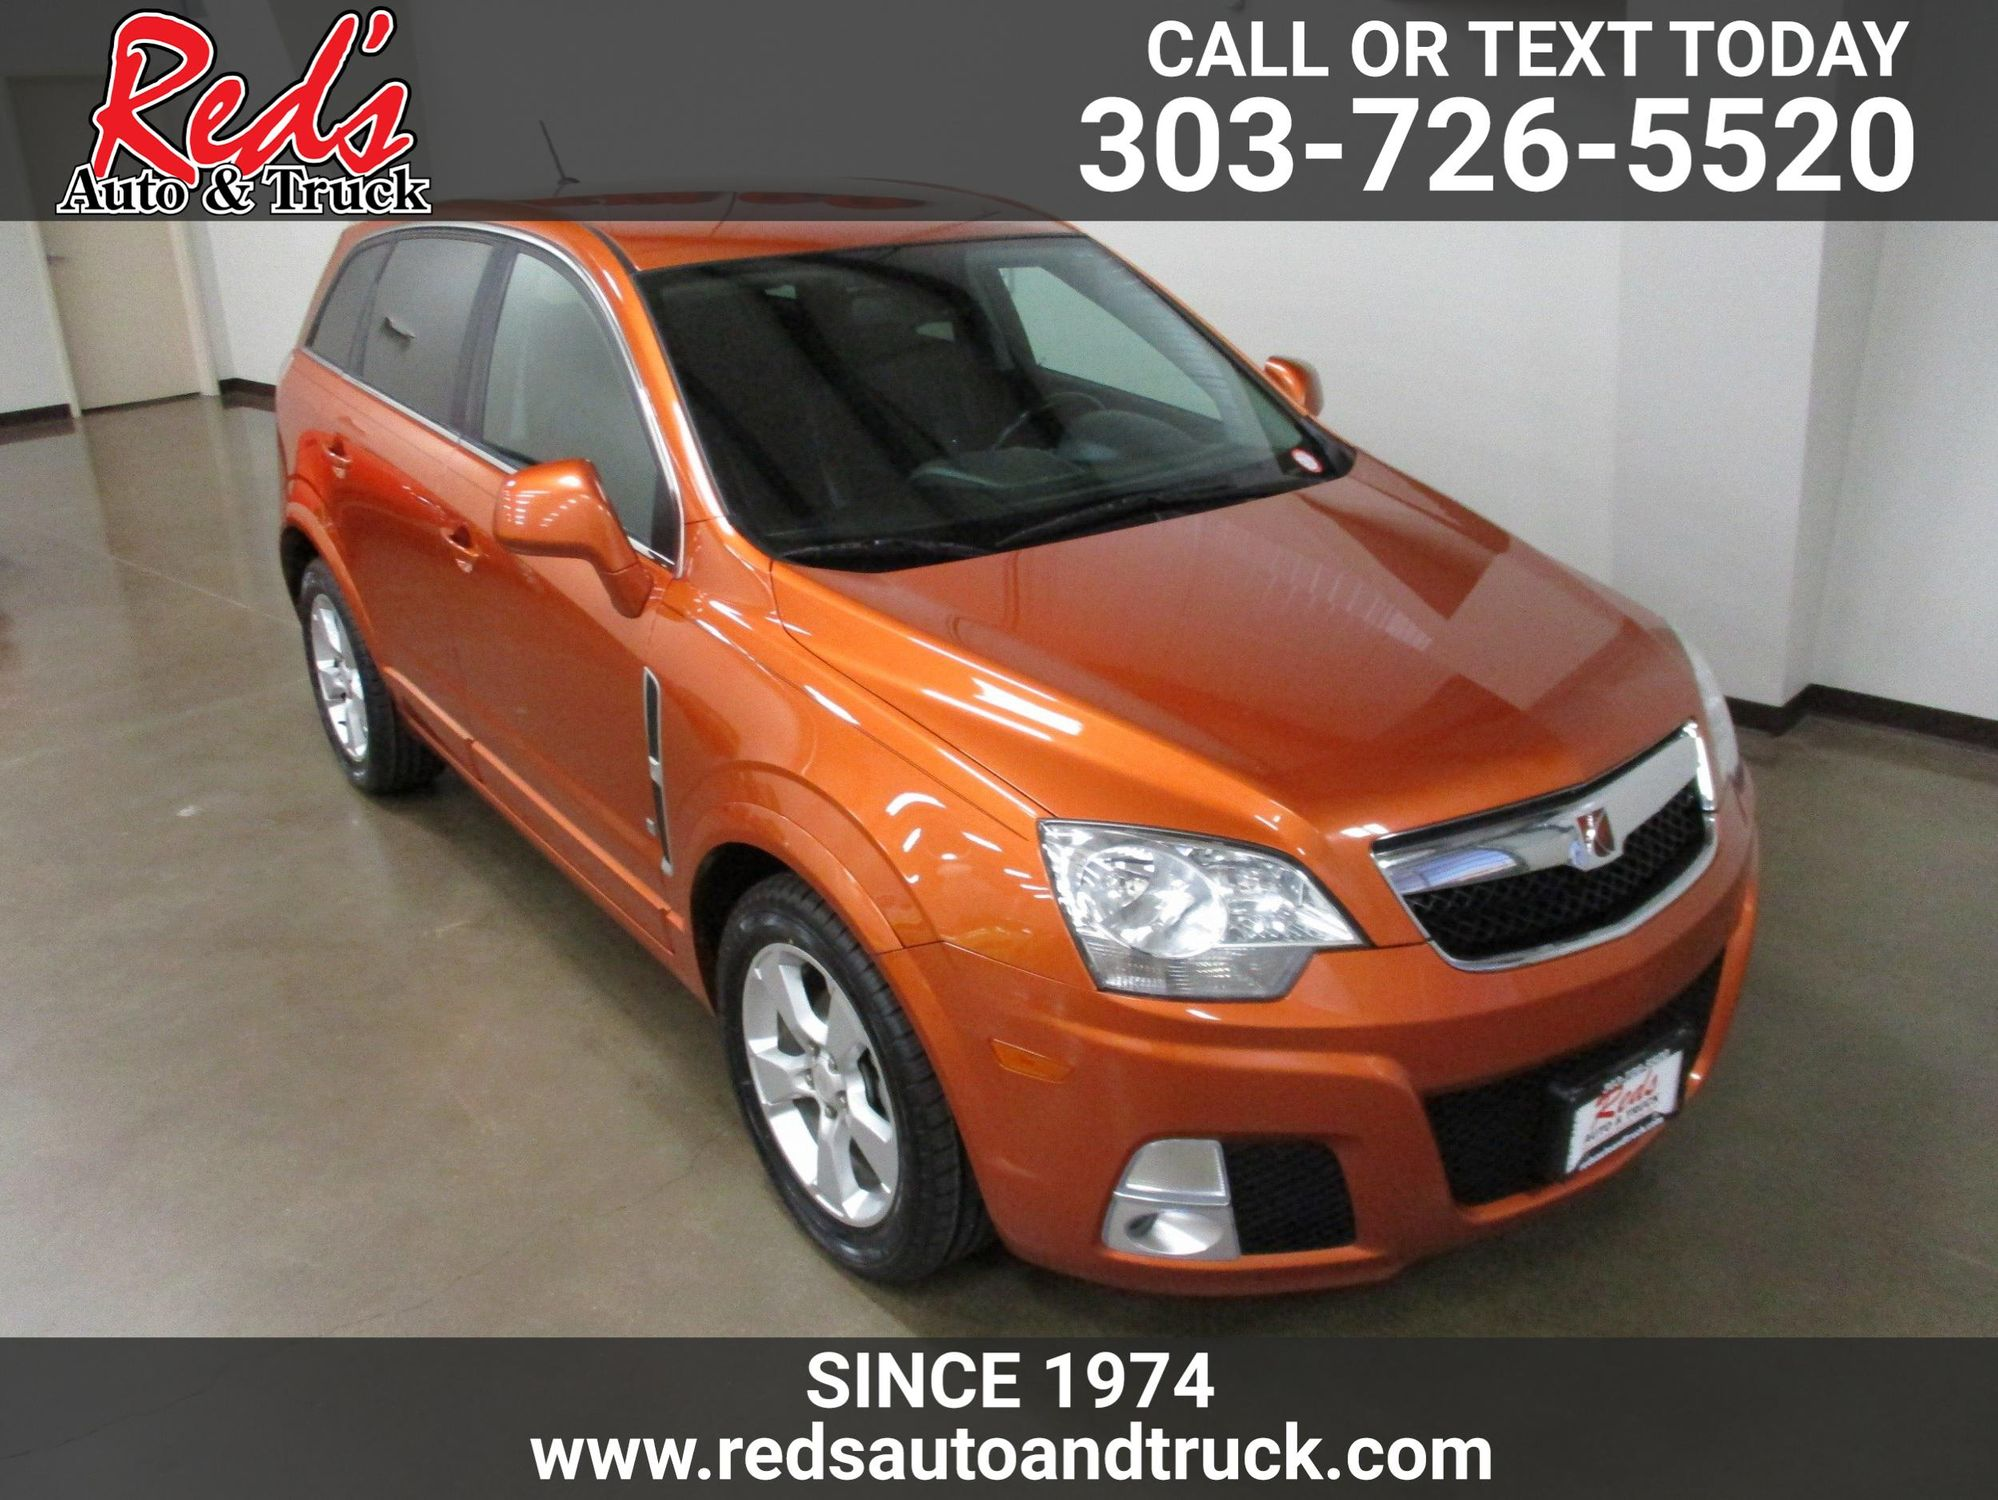 2008 Saturn Vue Red Line | Red's Auto and Truck